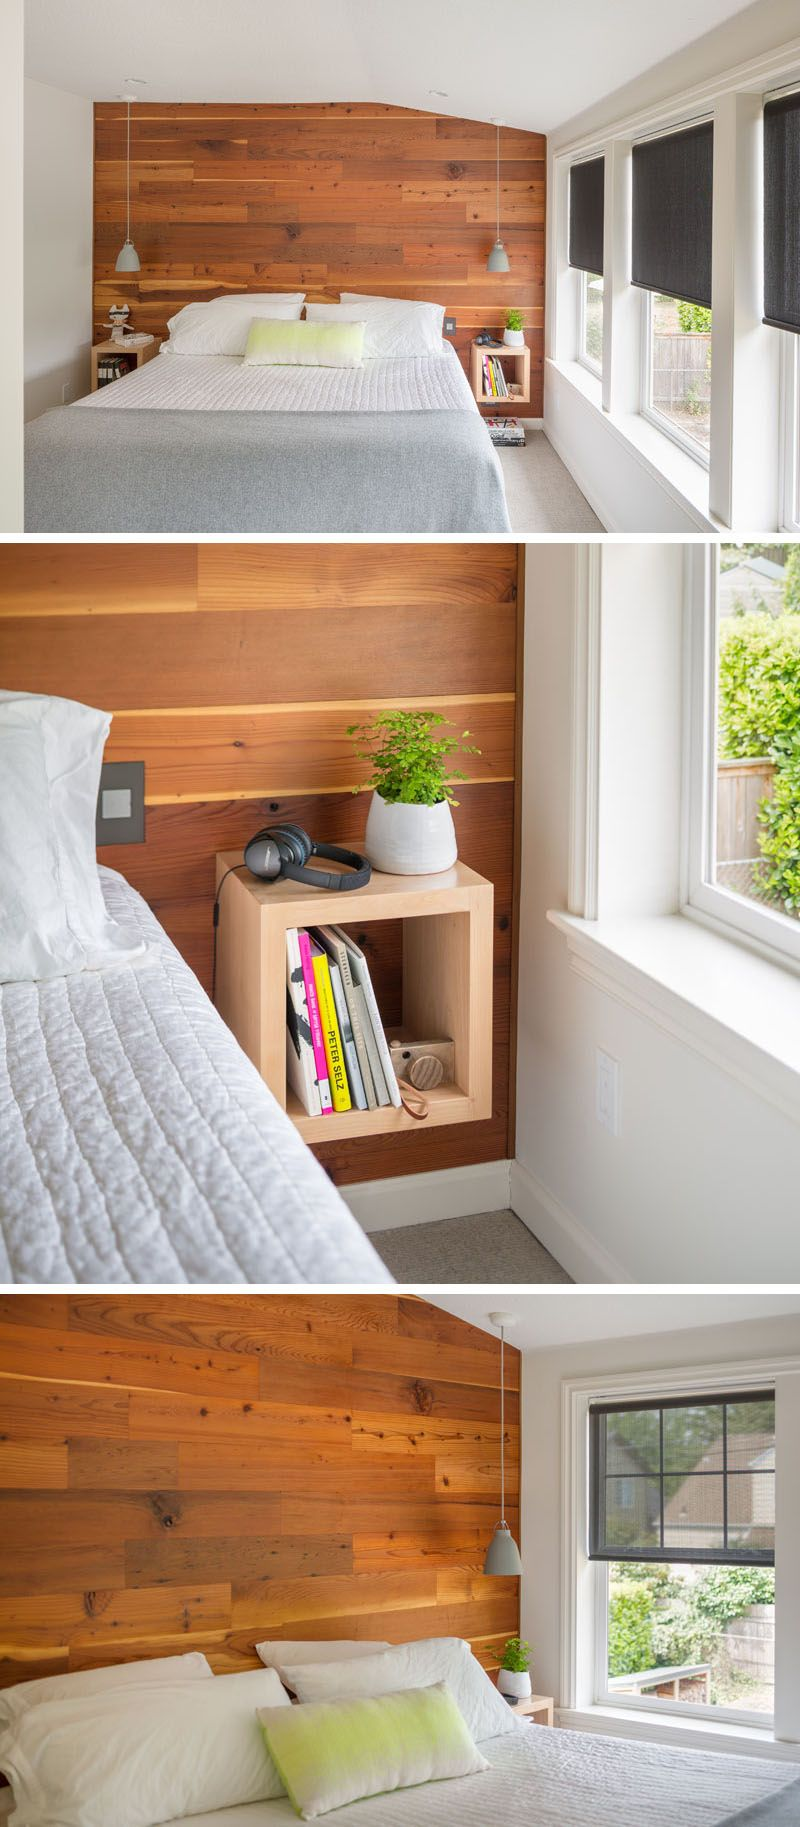 Bedroom Design Ideas Wood Accent Wall Behind The Bed With